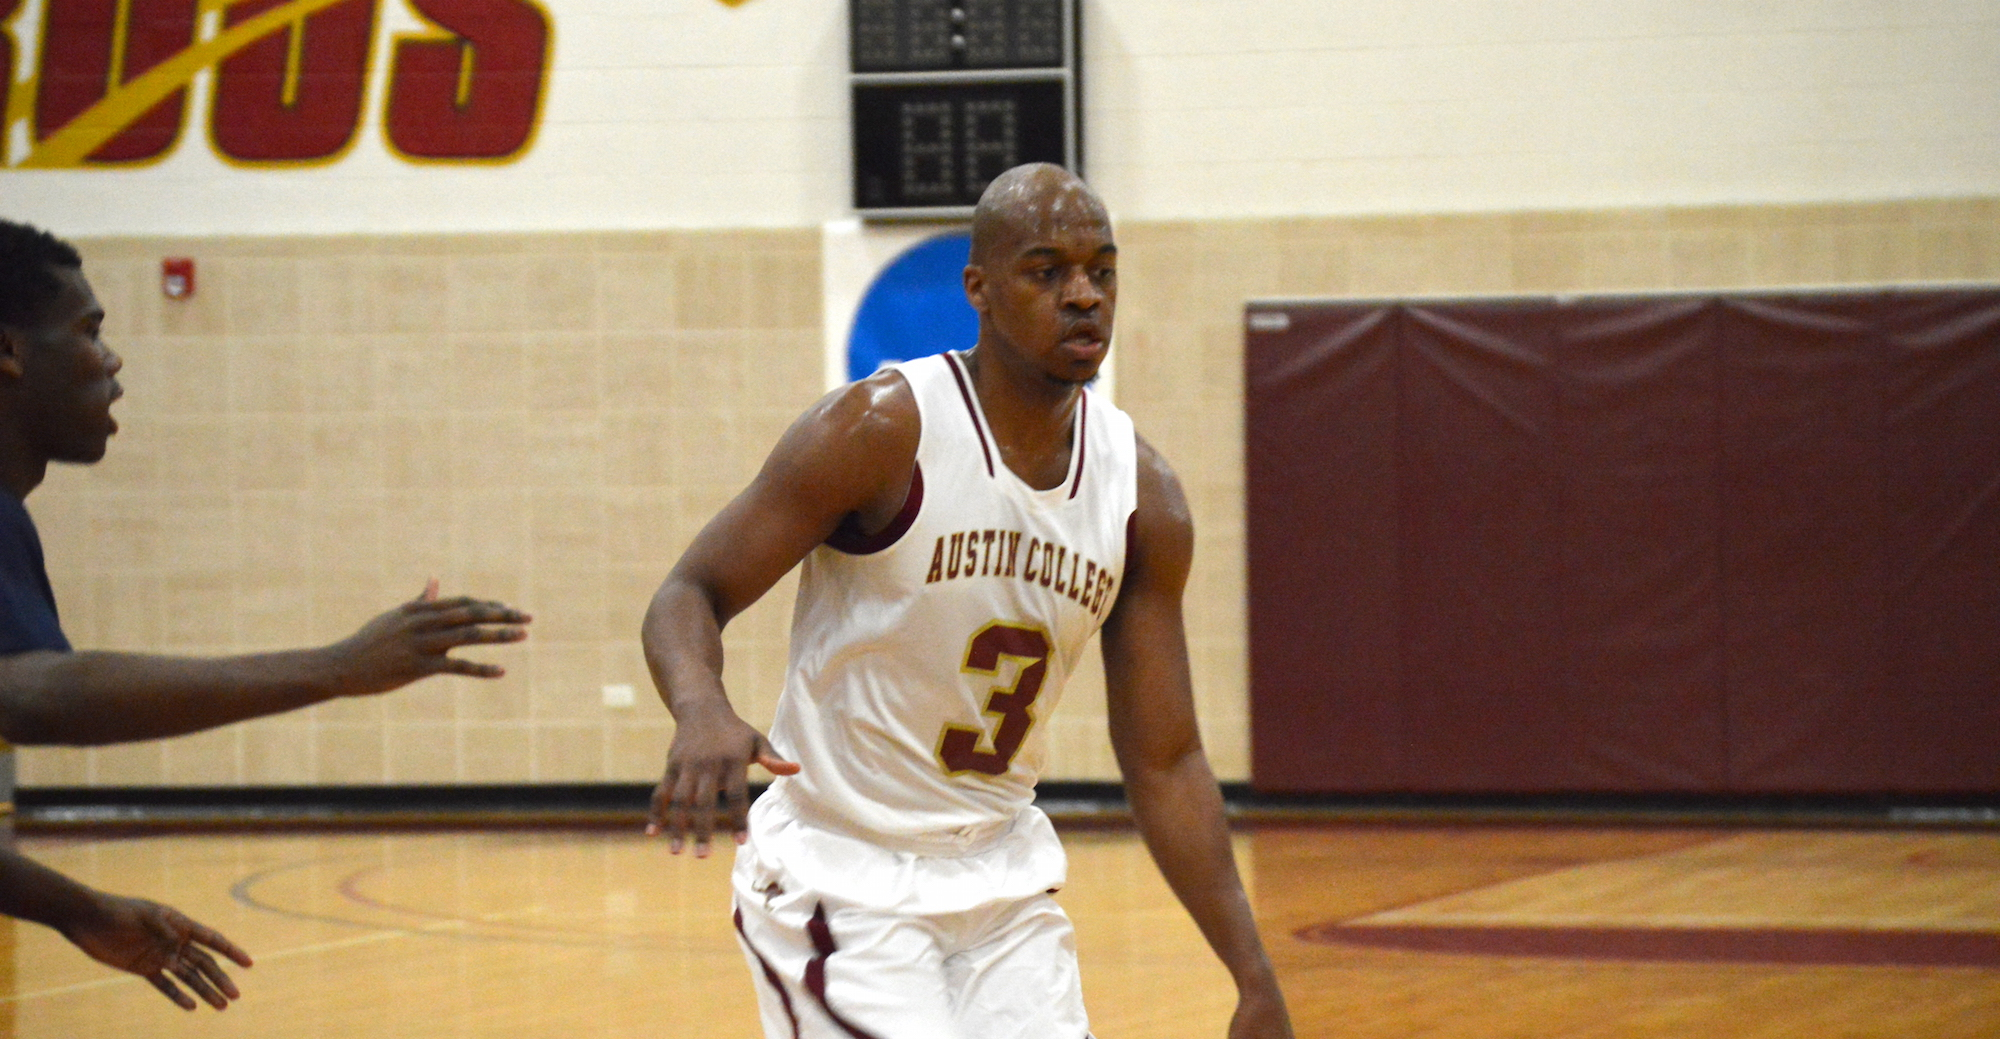 Men's Hoops Tops Millsaps in Overtime to Improve to 8-0